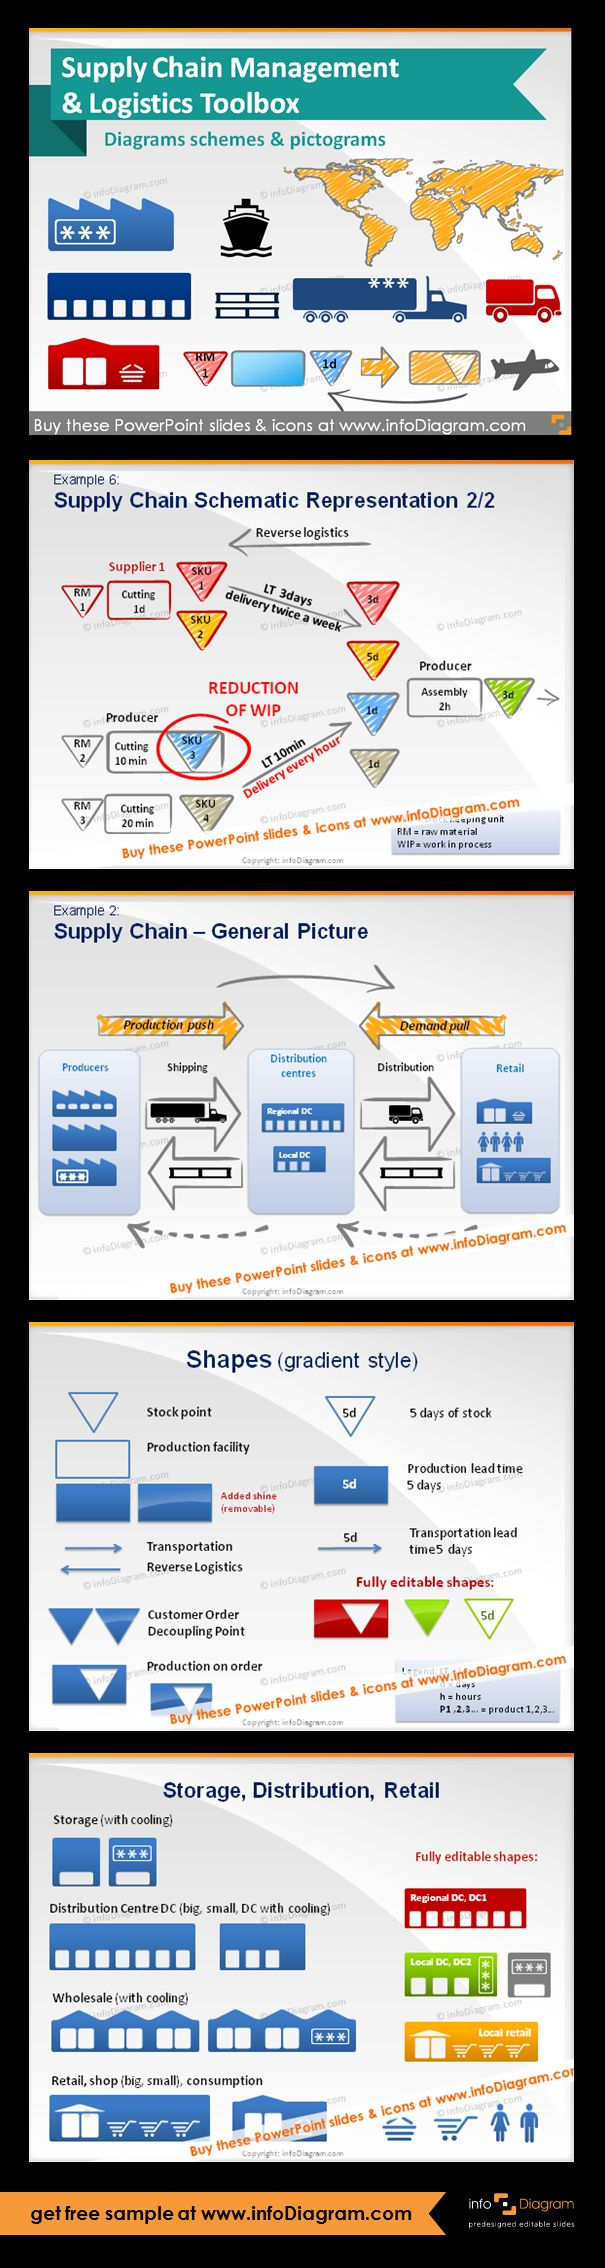 Supply Chain and Logistics schema diagrams & pictogram icons - editable graphical elements for PowerPoint. Fully adaptable vector shapes (color, filling, size). Supply Chain Schematic Representation. Supply Chain - general picture of related logistics. Shapes in gradient style Pictograms of storage and storage with cooling, Distribution Centre DC (big, small, DC with cooling), Wholesale (with cooling), Retail, shop (big, small), consumption.